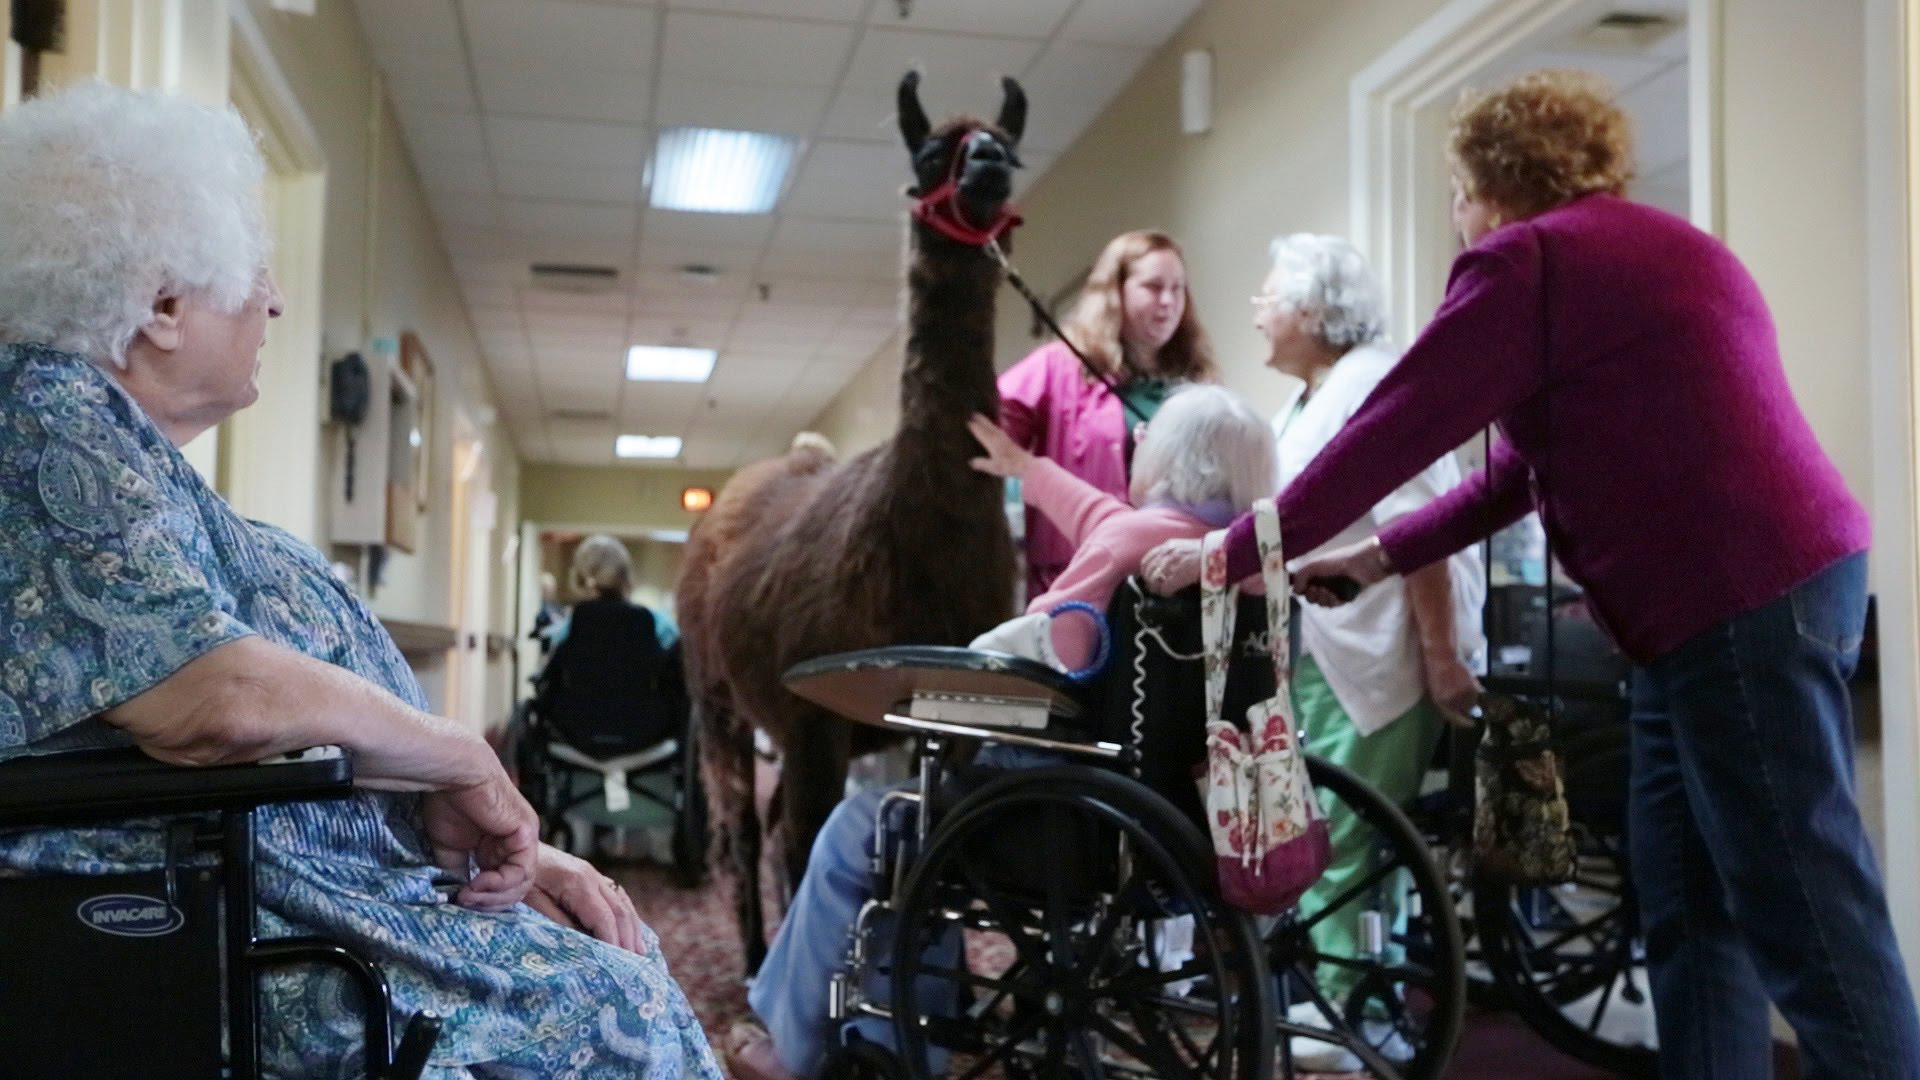 massachusetts nursing home brings in llamas and other unusual